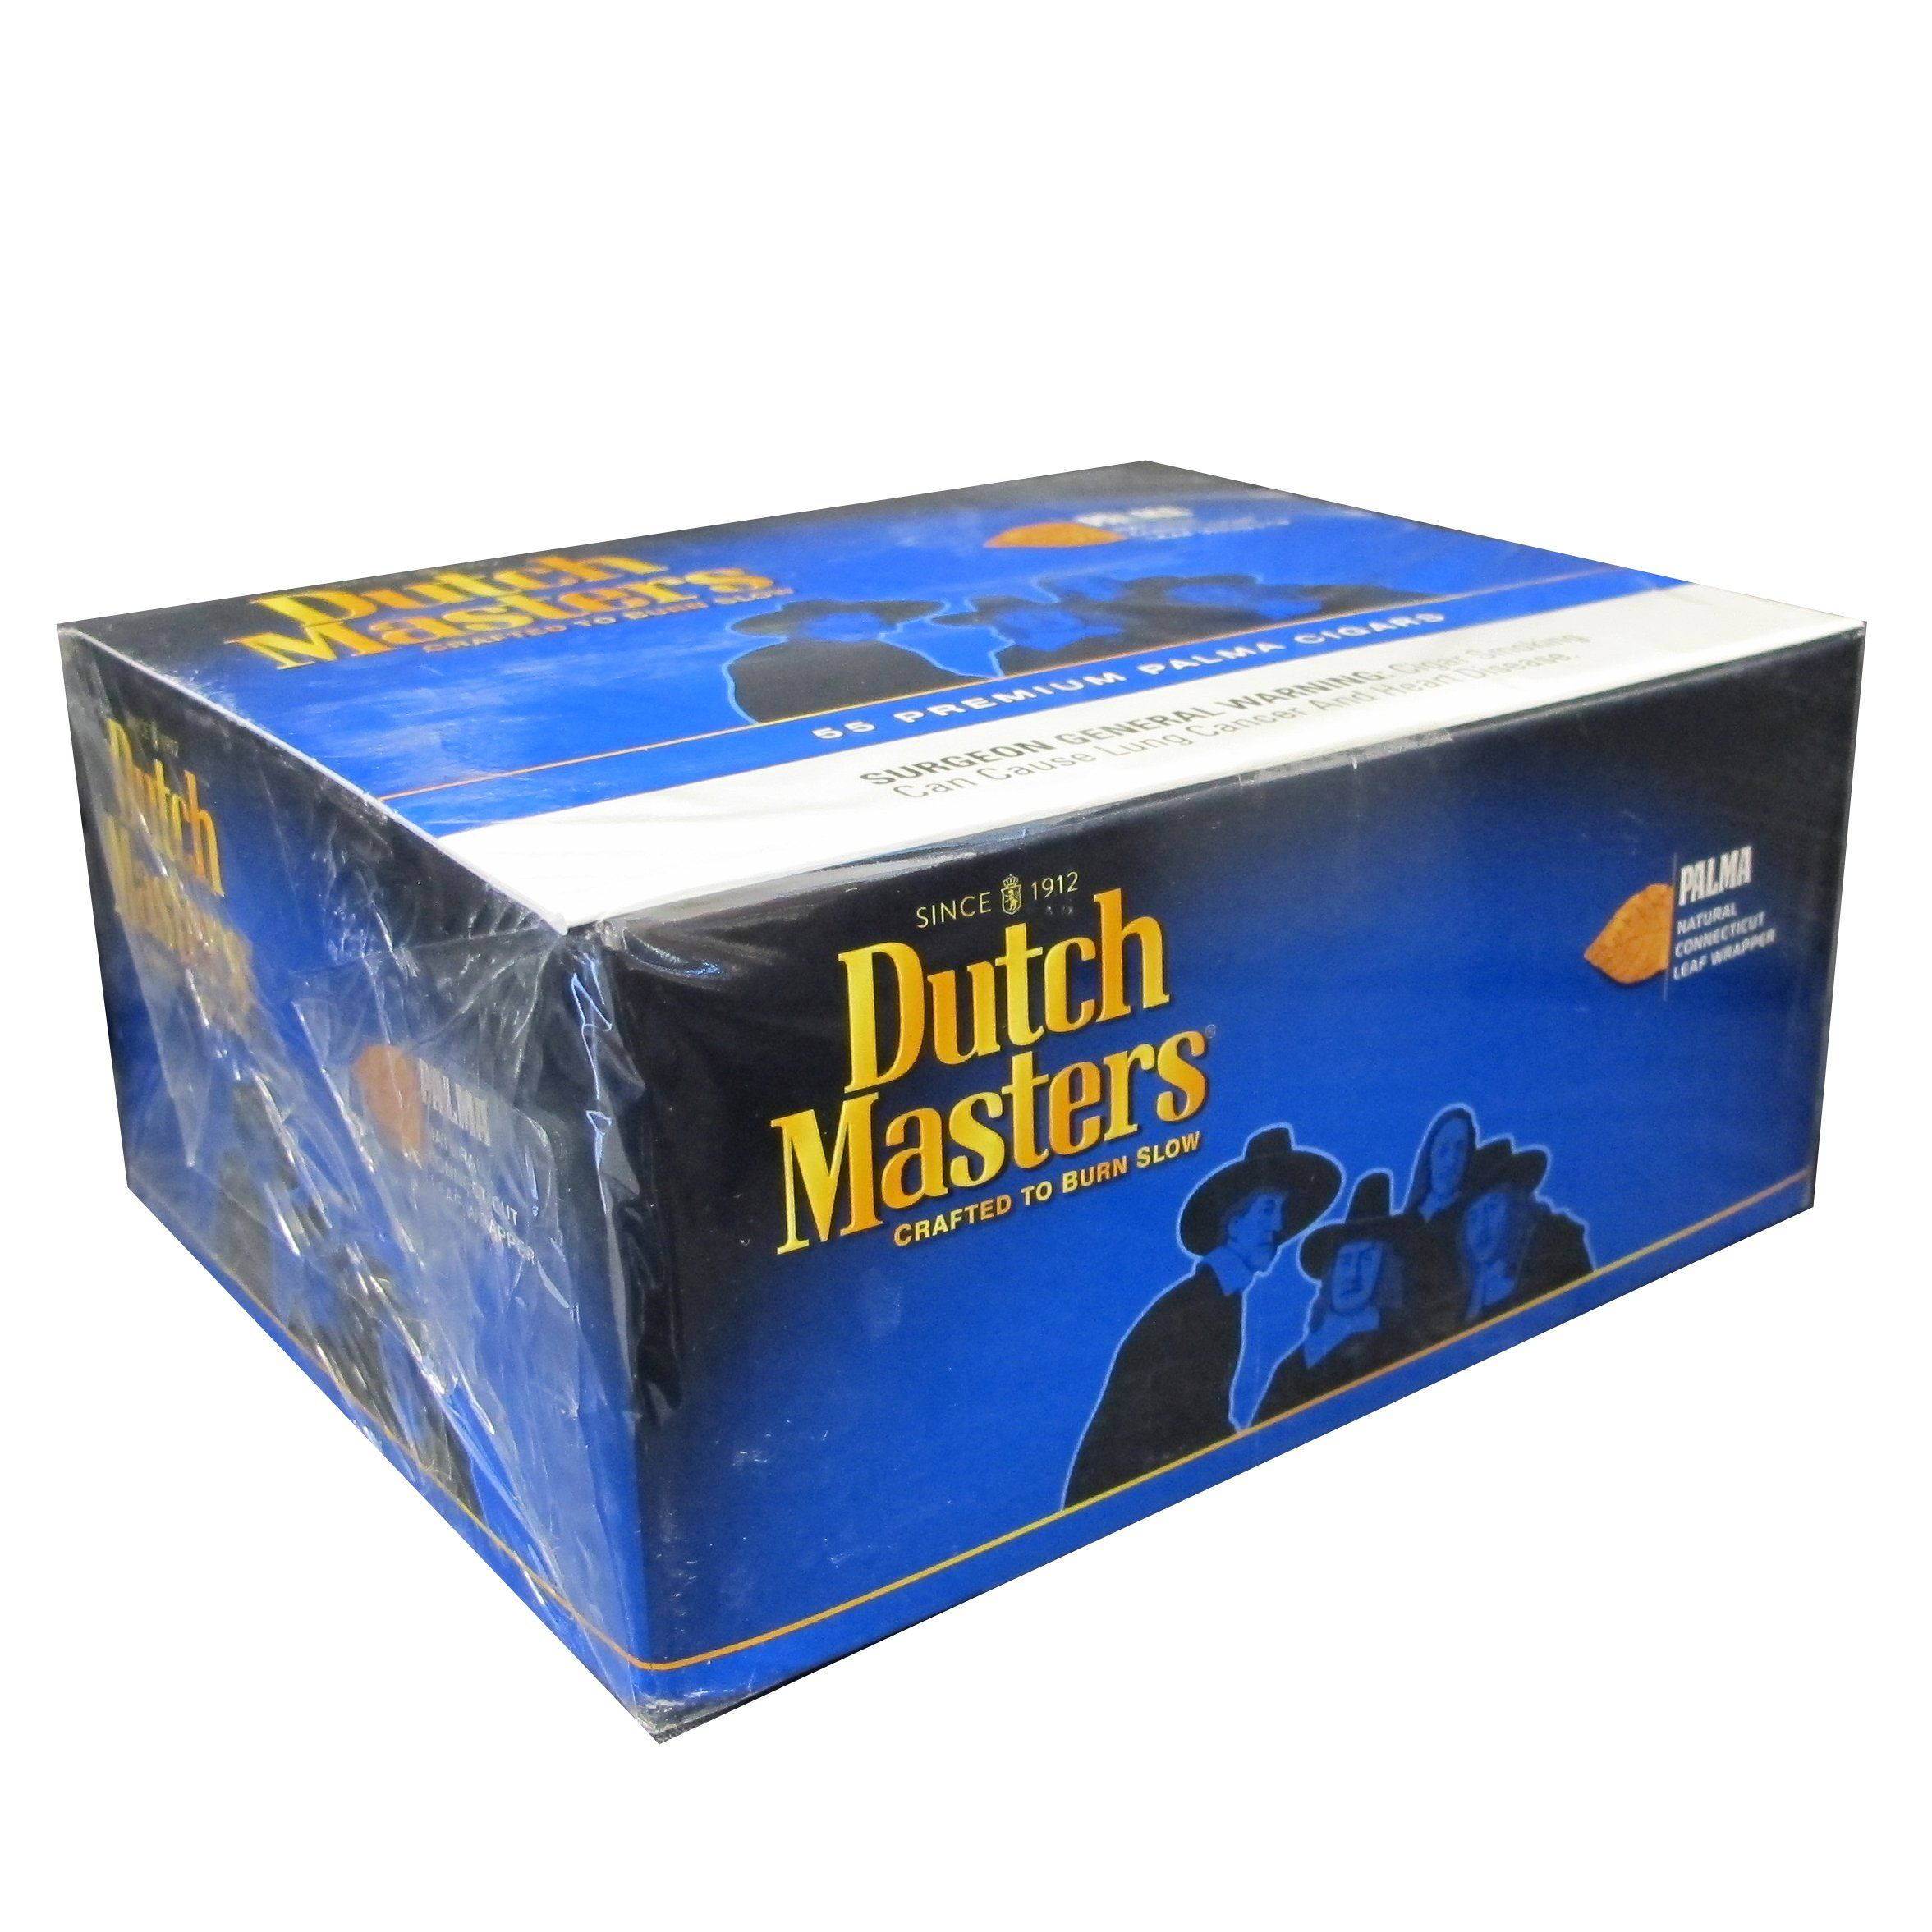 Dutch Masters Palma Cigar